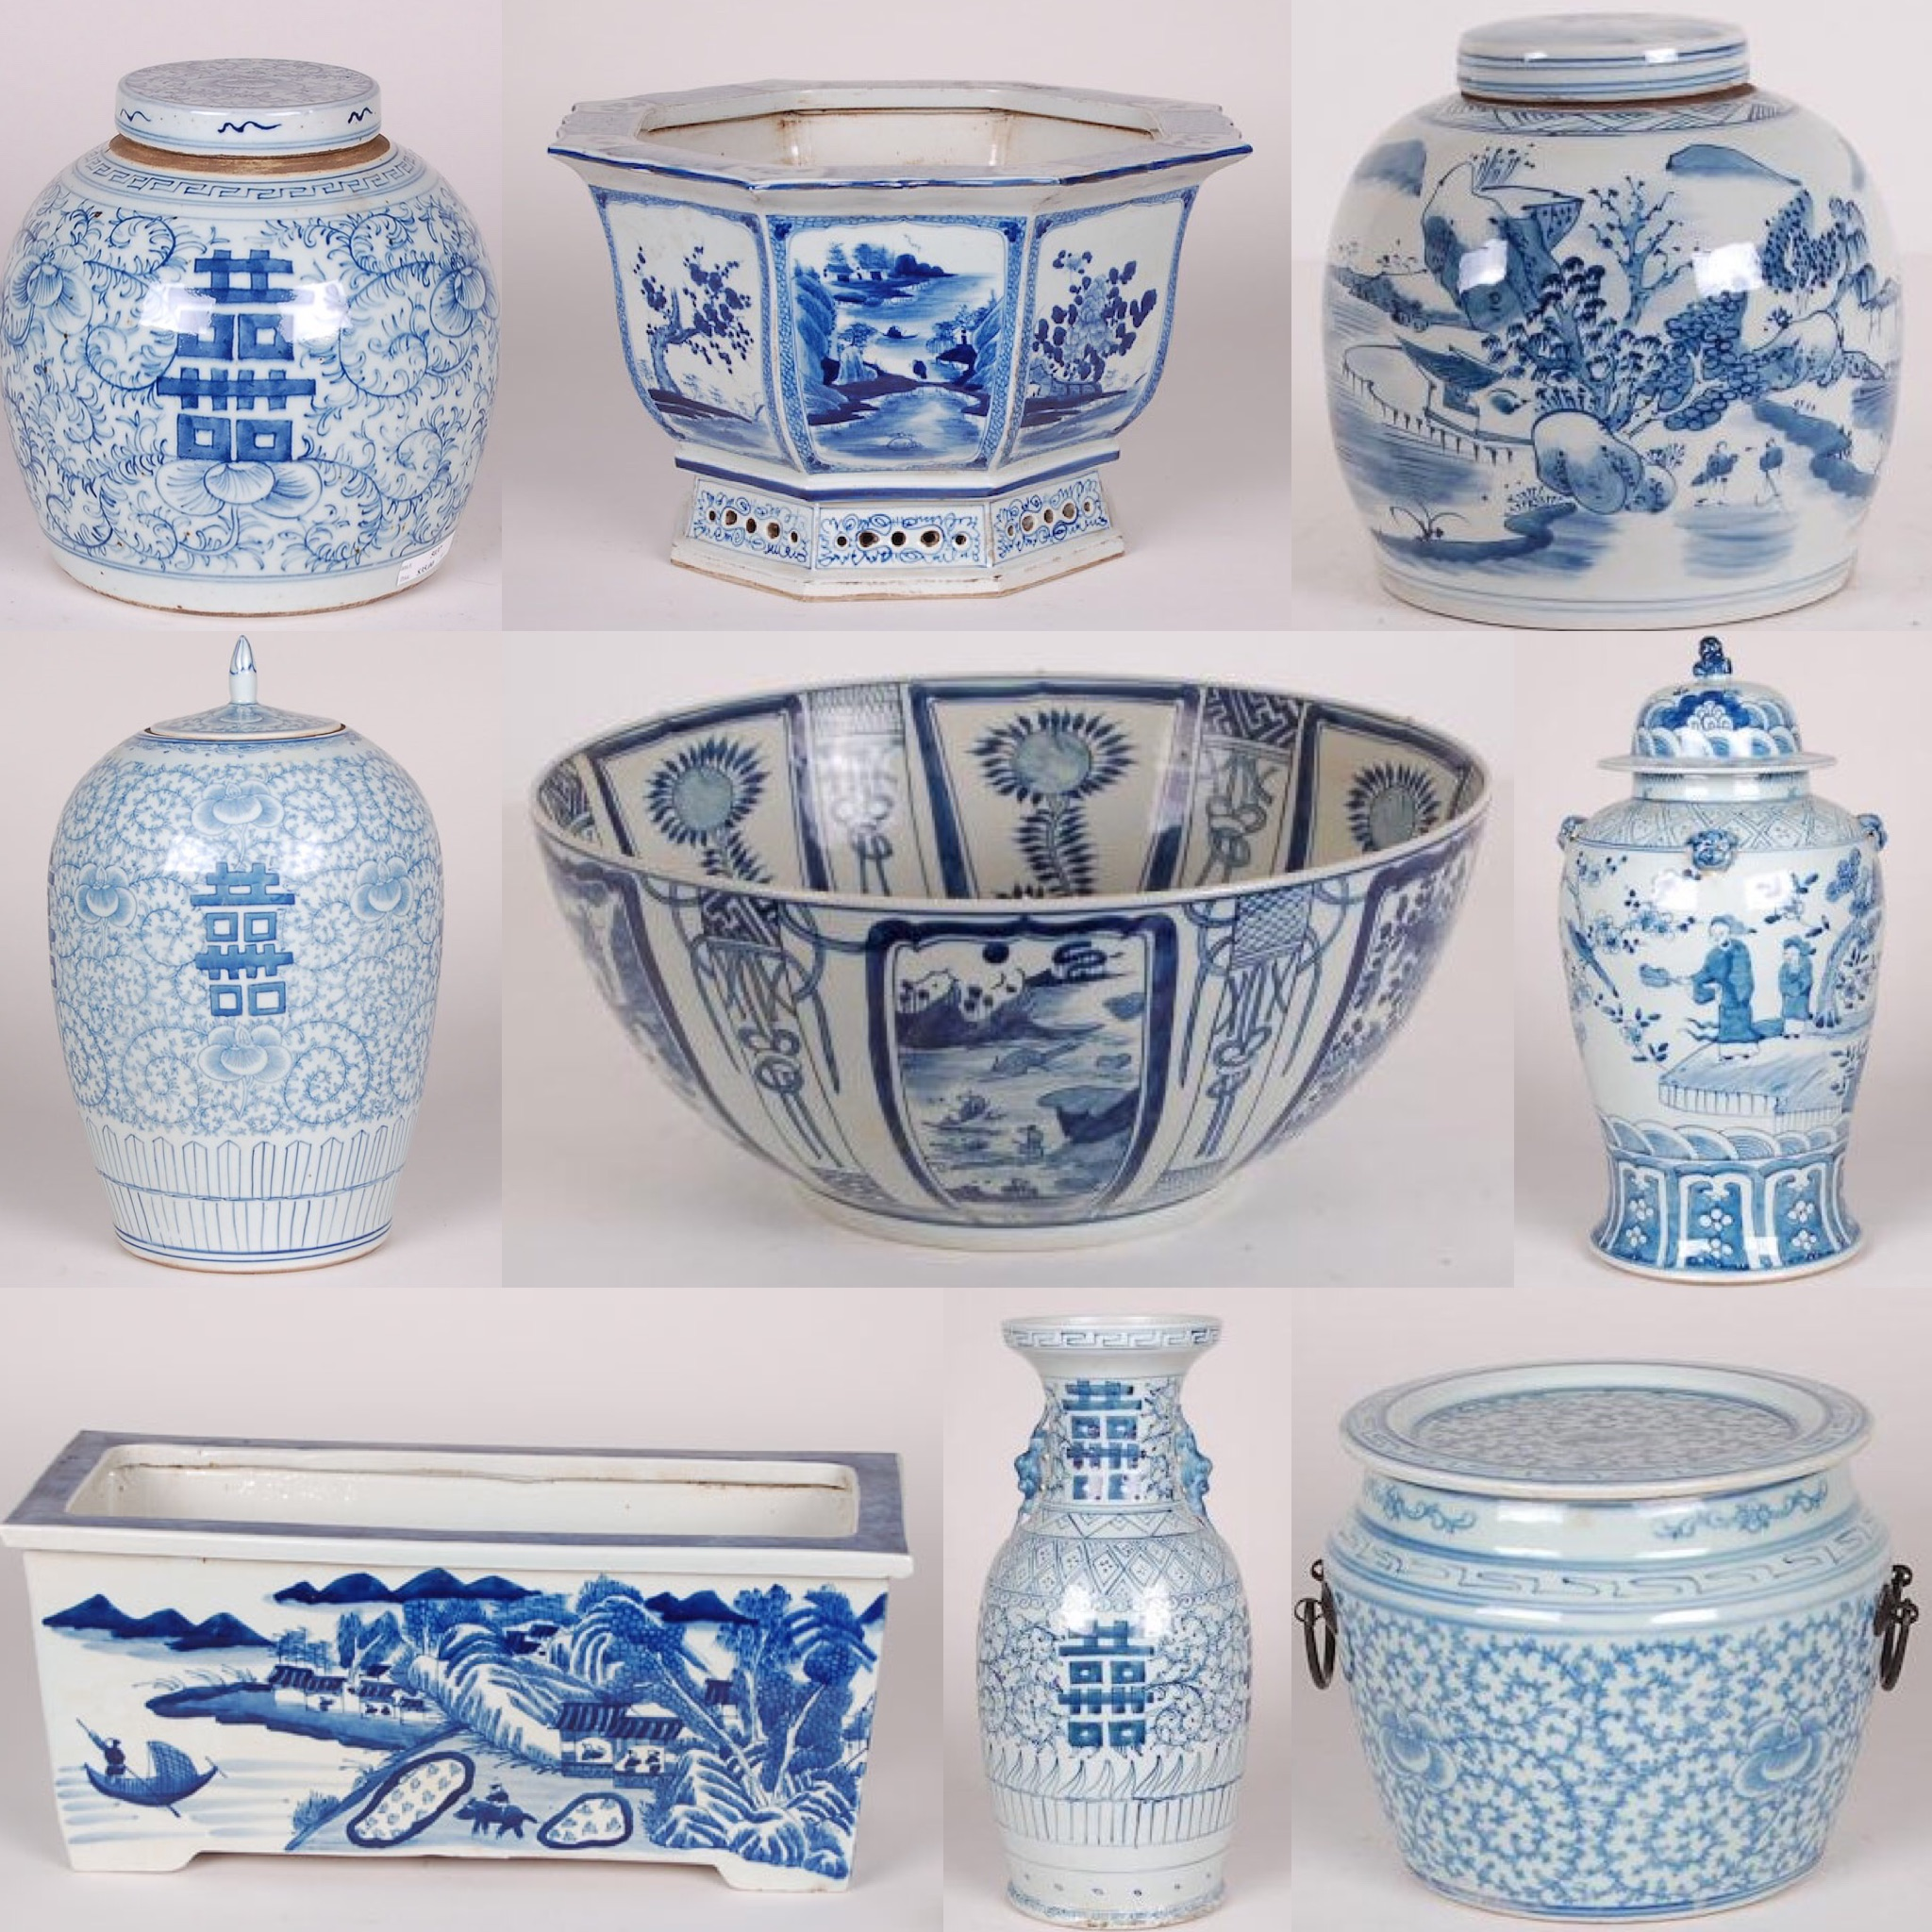 Sample of some of the blue and white pieces available at The Kellogg Collection.